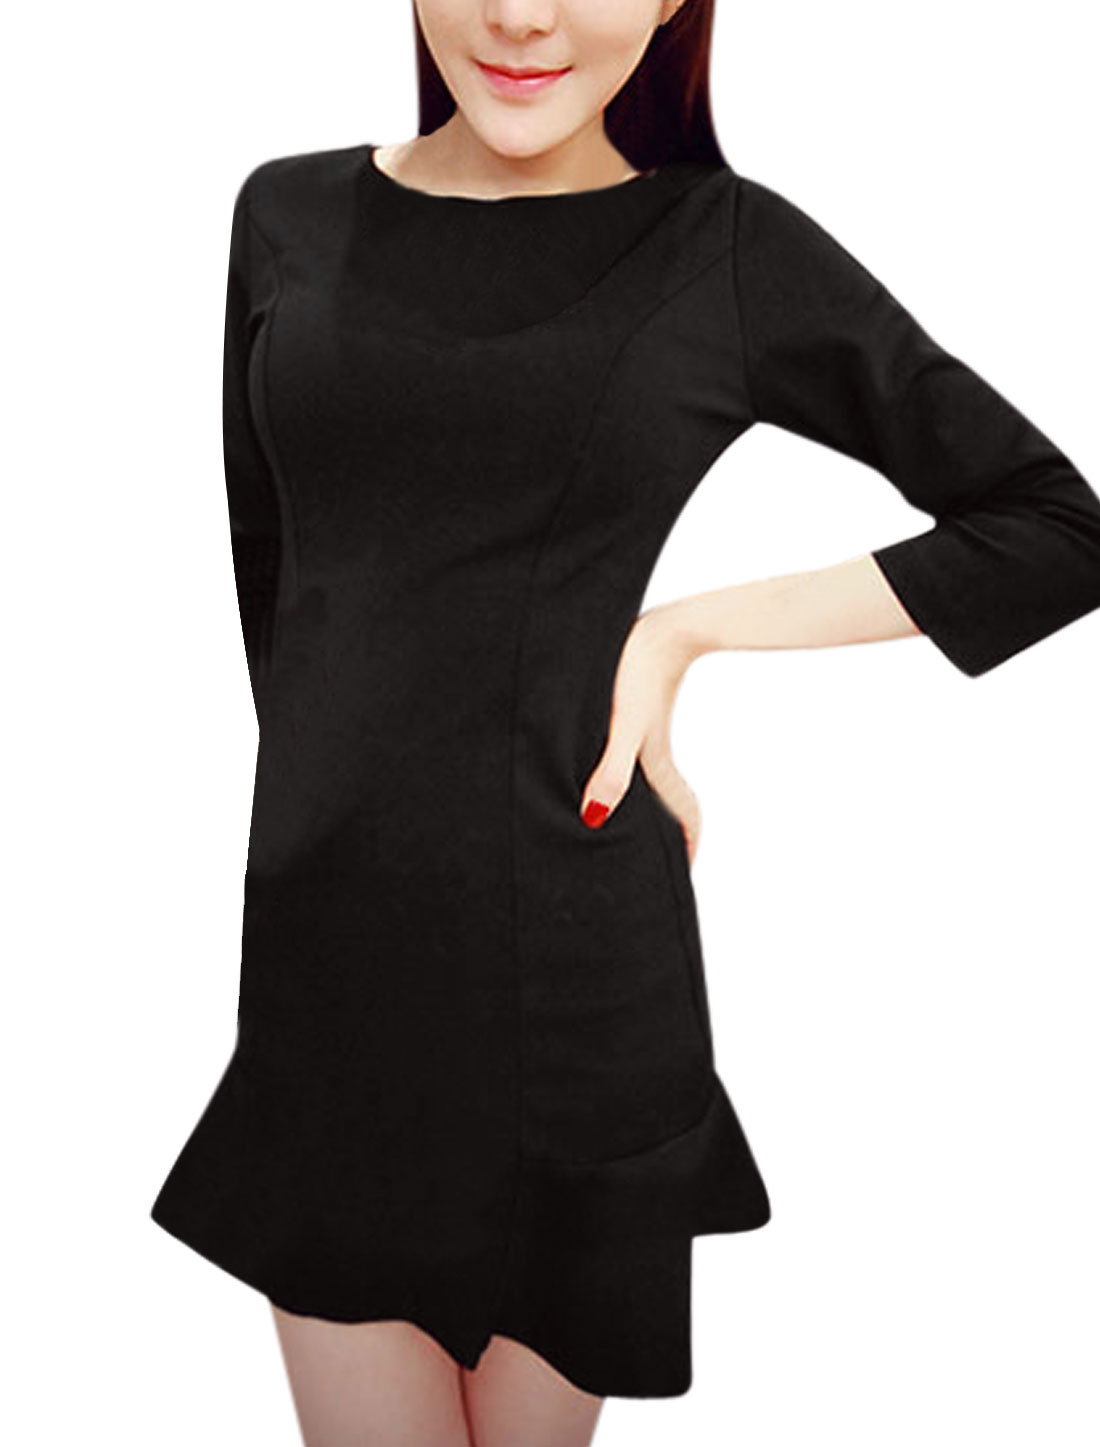 Round Neck 3/4 Sleeves CasualTunic Dress for Women Black XS